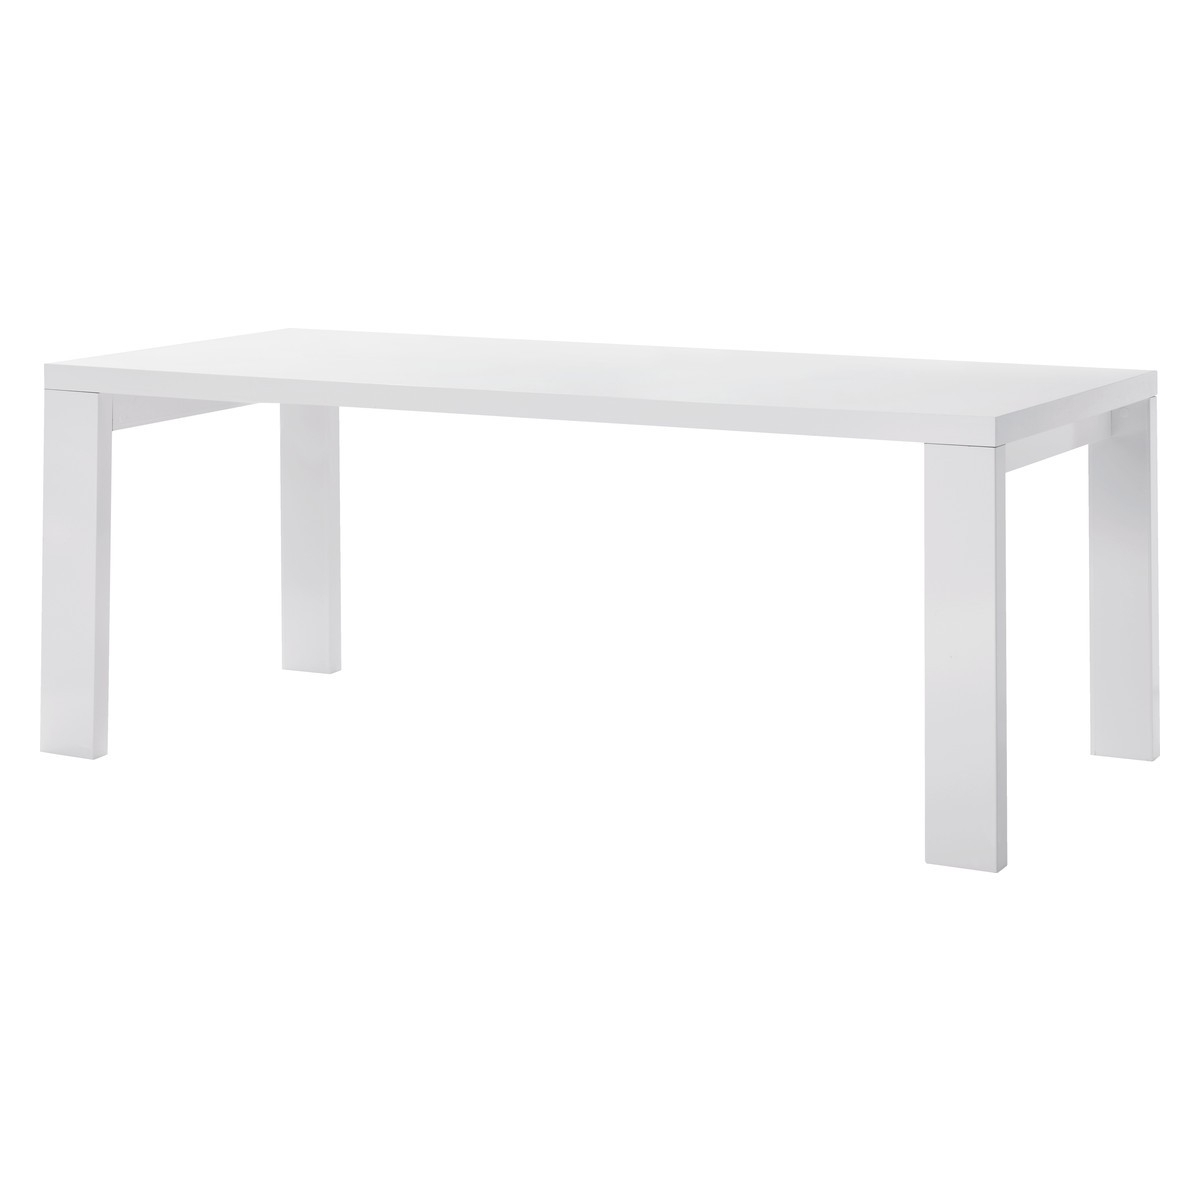 Well Known 8 Seater White Dining Tables Intended For Asper 8 Seater White High Gloss Dining Table (View 5 of 25)